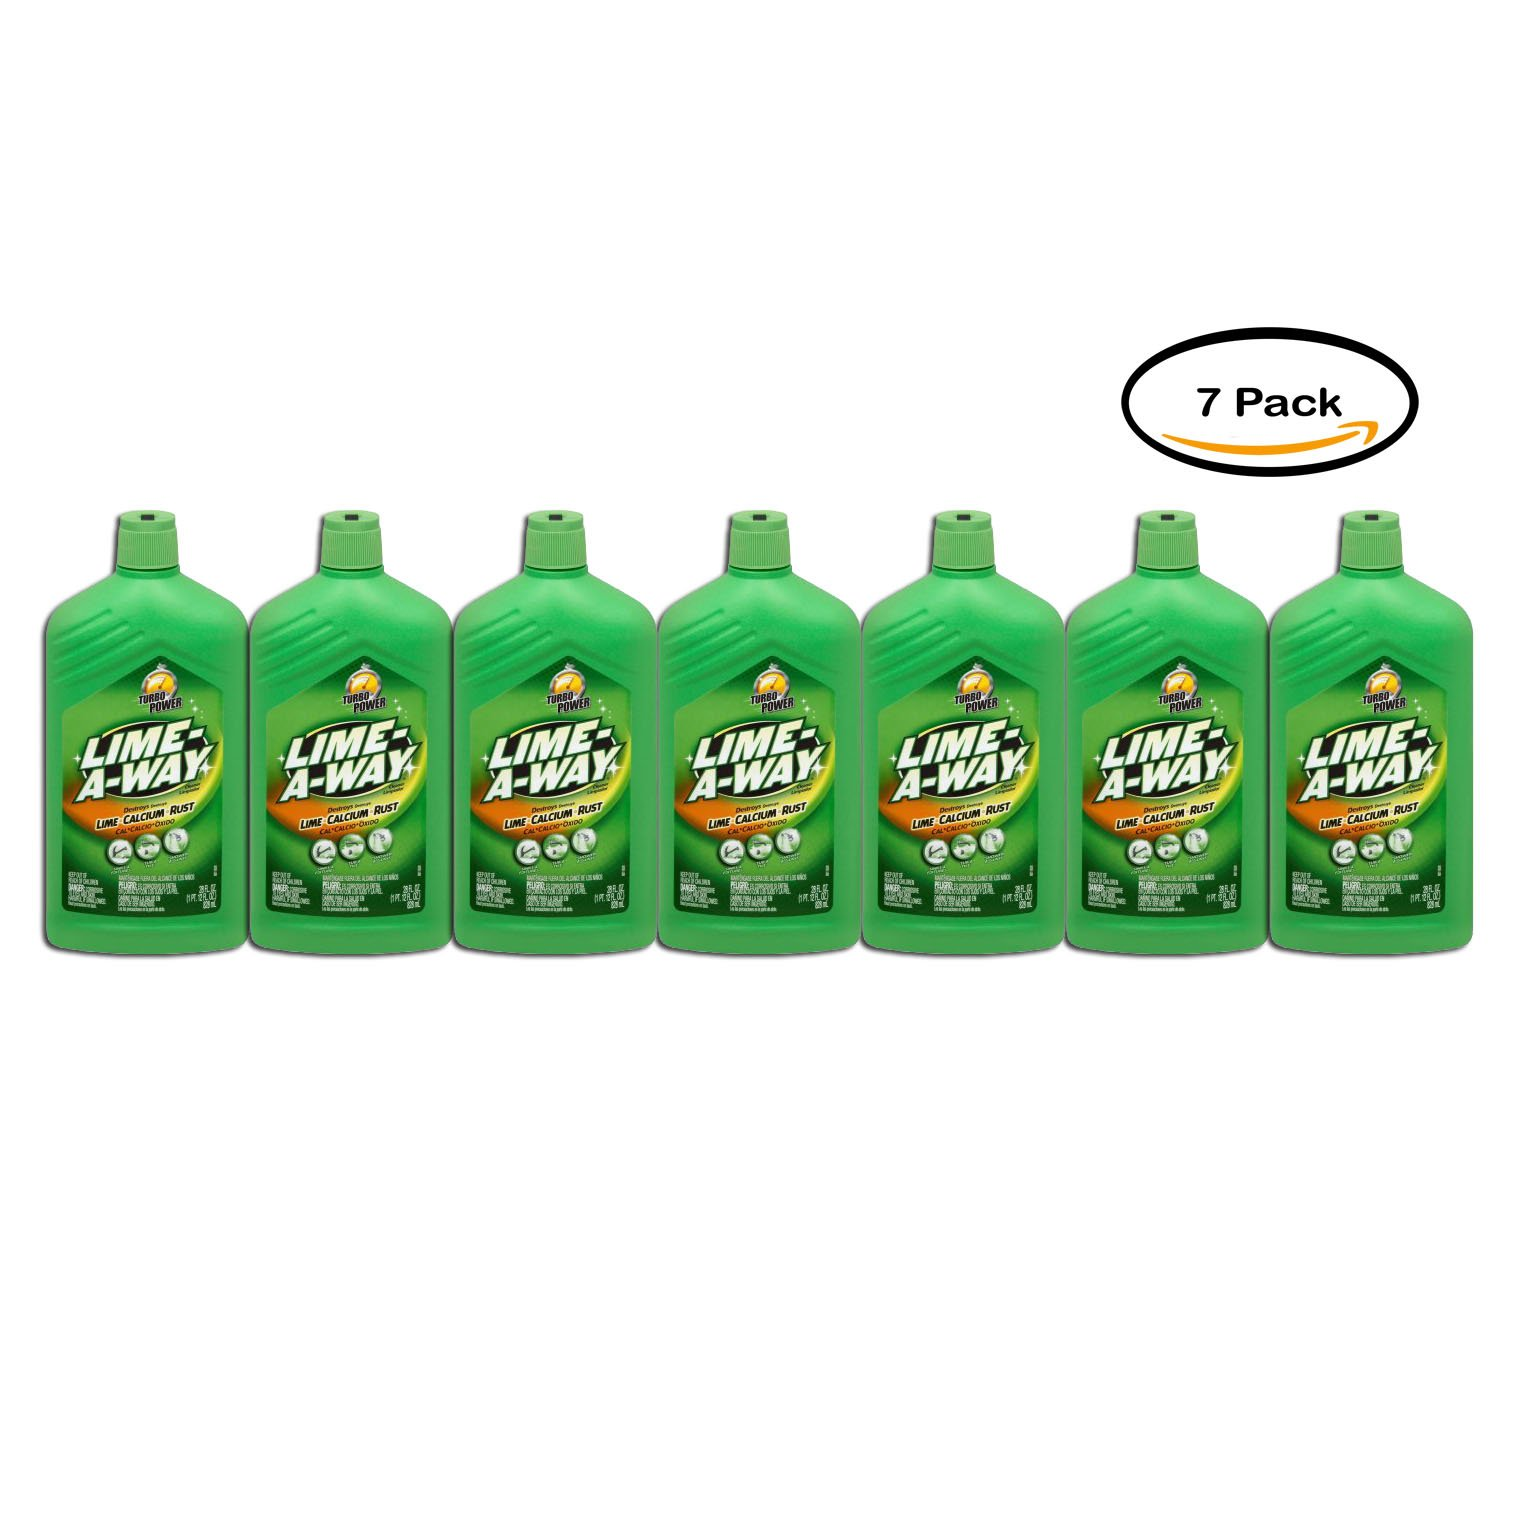 Pack of 7 - Lime-A-Way Lime Calcium Rust Cleaner, 28 Fl Oz by Lime-A-Way